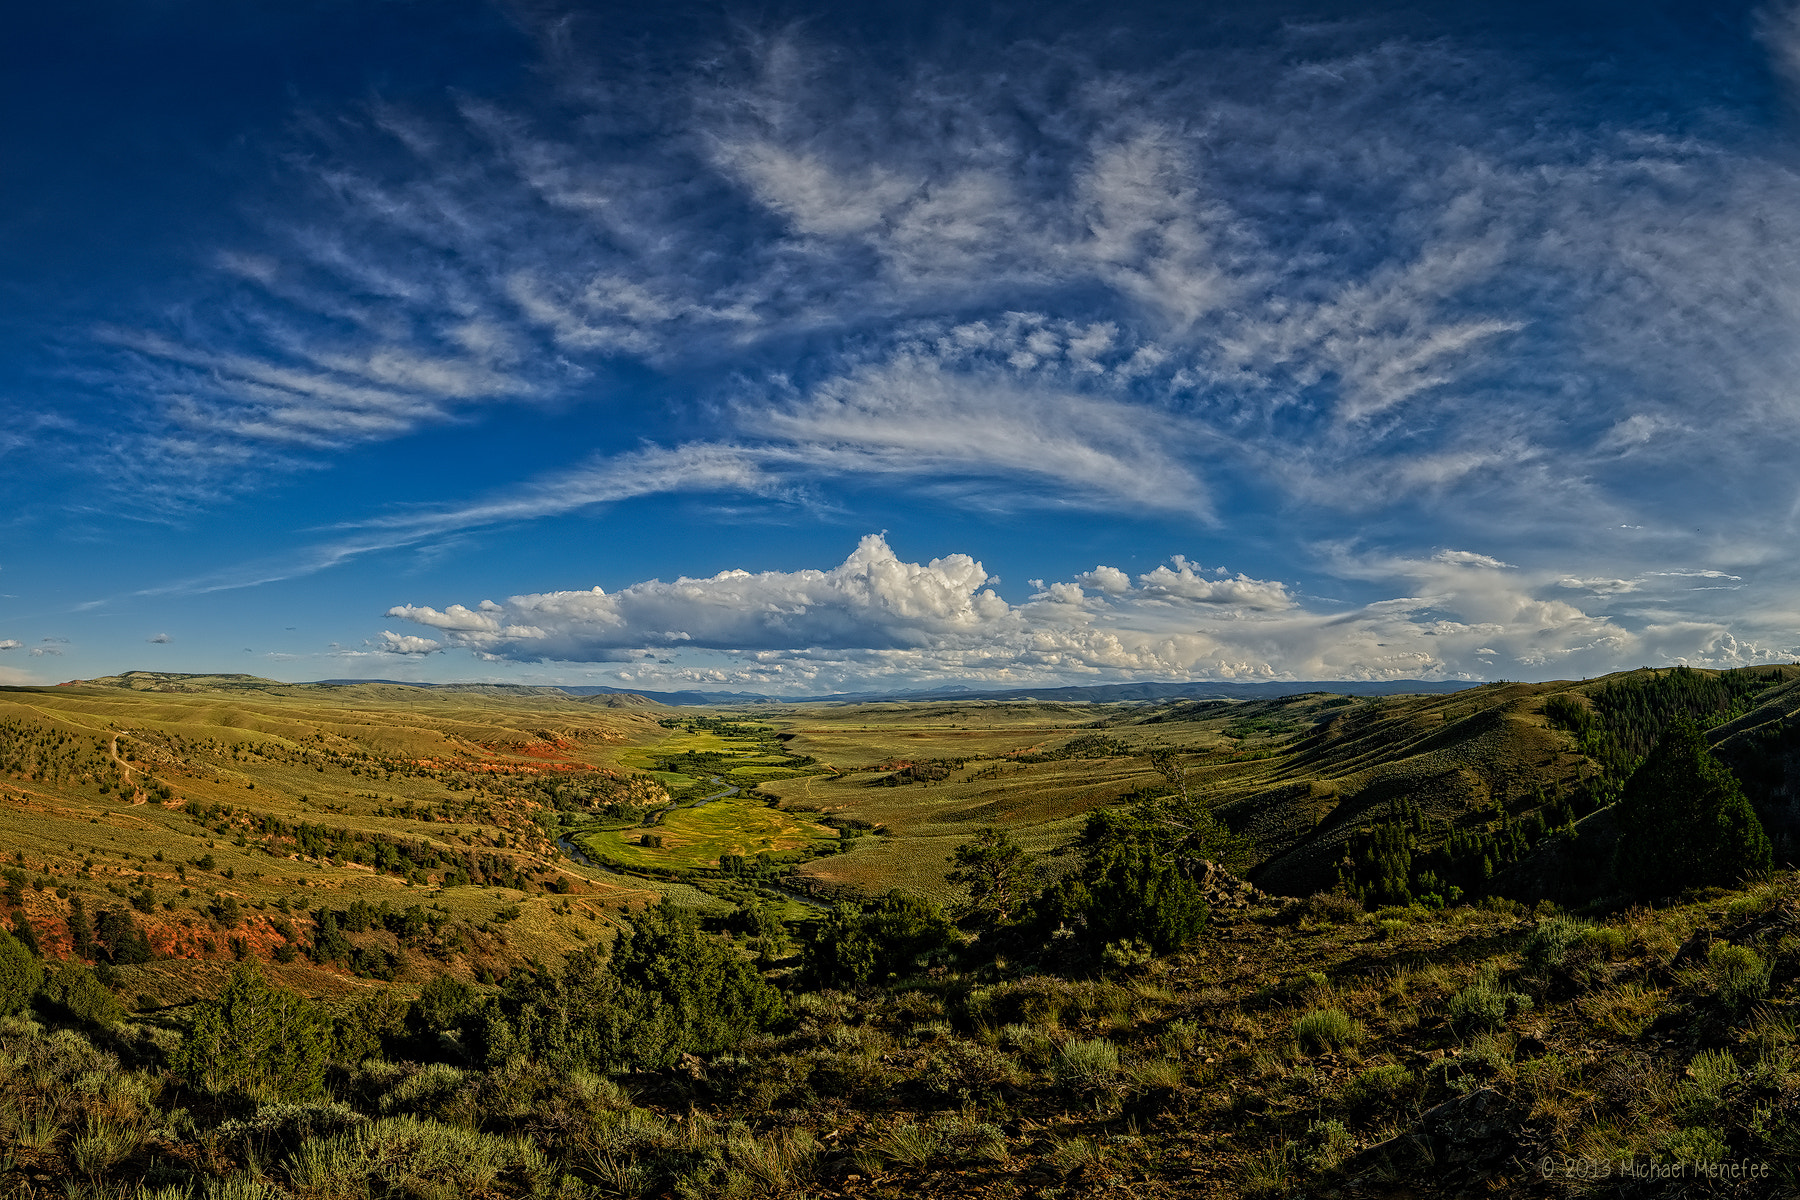 Photograph Serenity Found in the Laramie River Valley by Michael Menefee on 500px